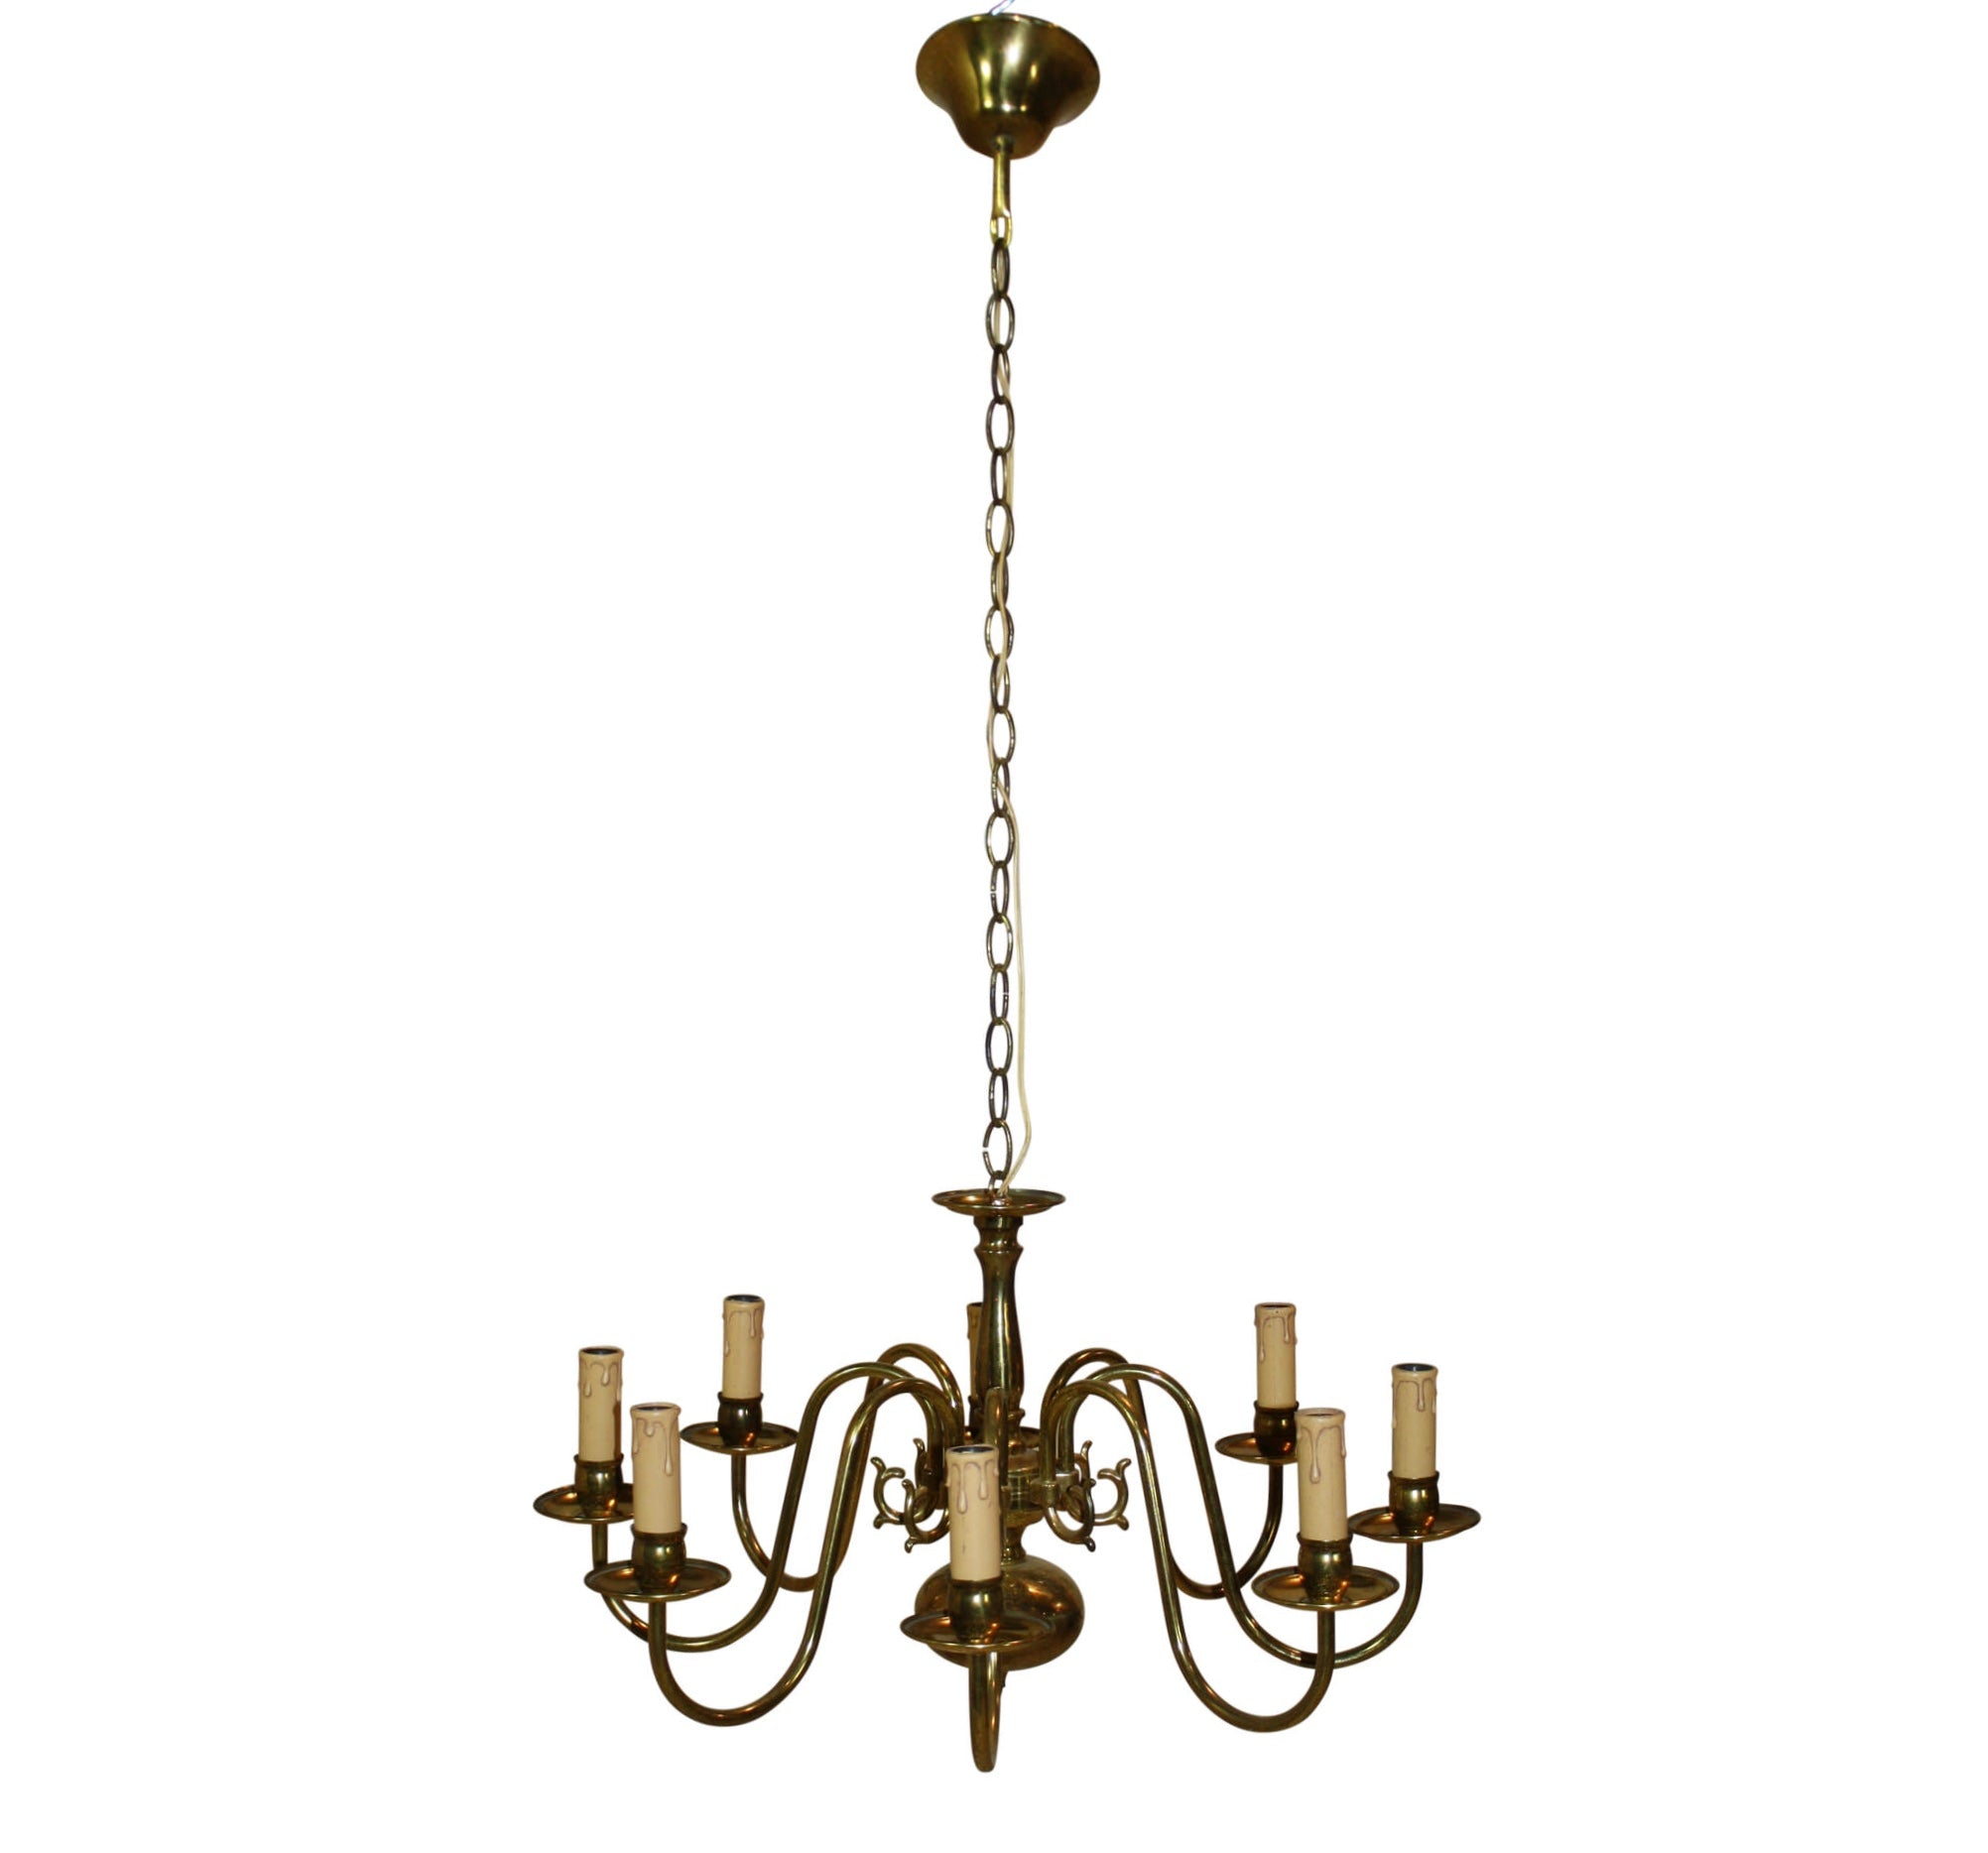 Dutch Brass Chandelier